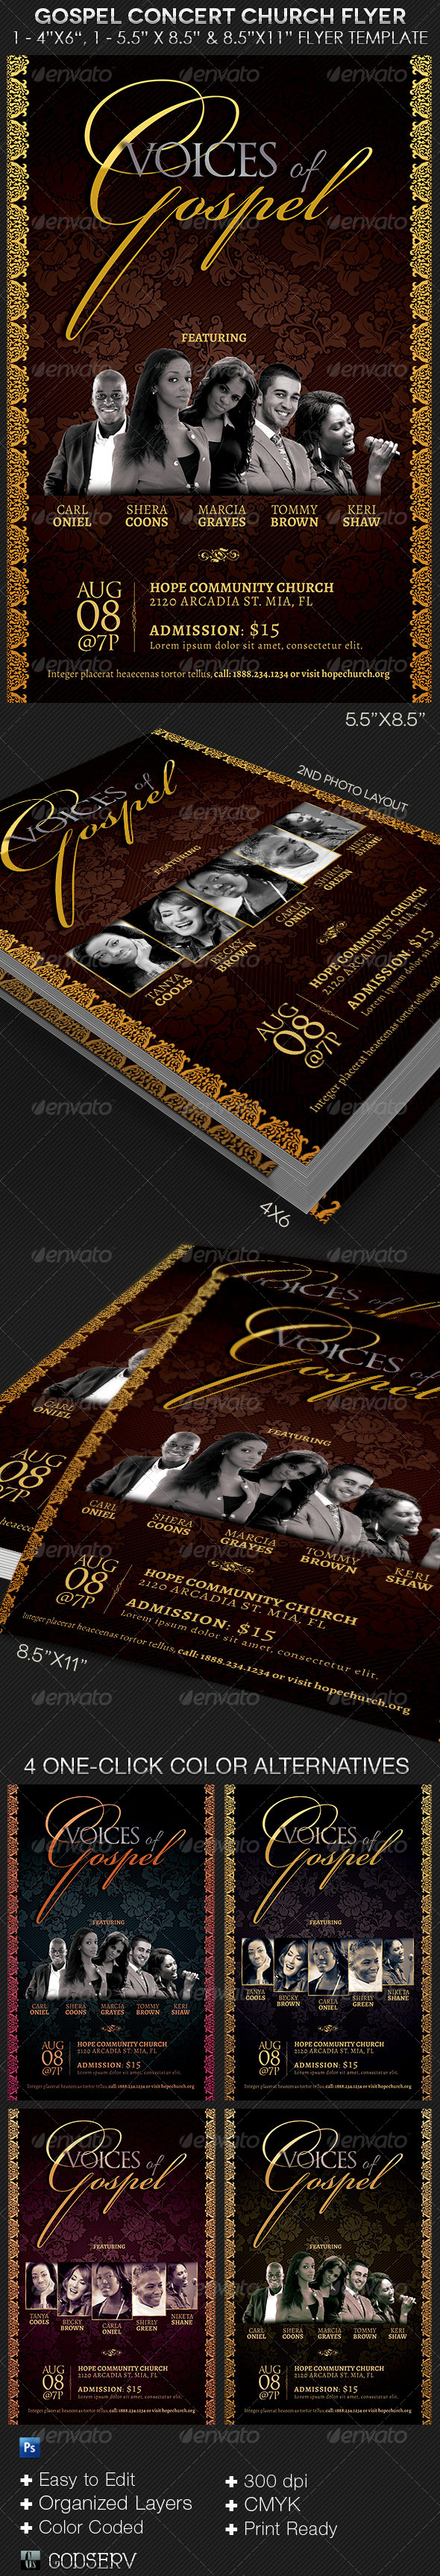 GraphicRiver Gospel Concert Church Flyer Template 8536681